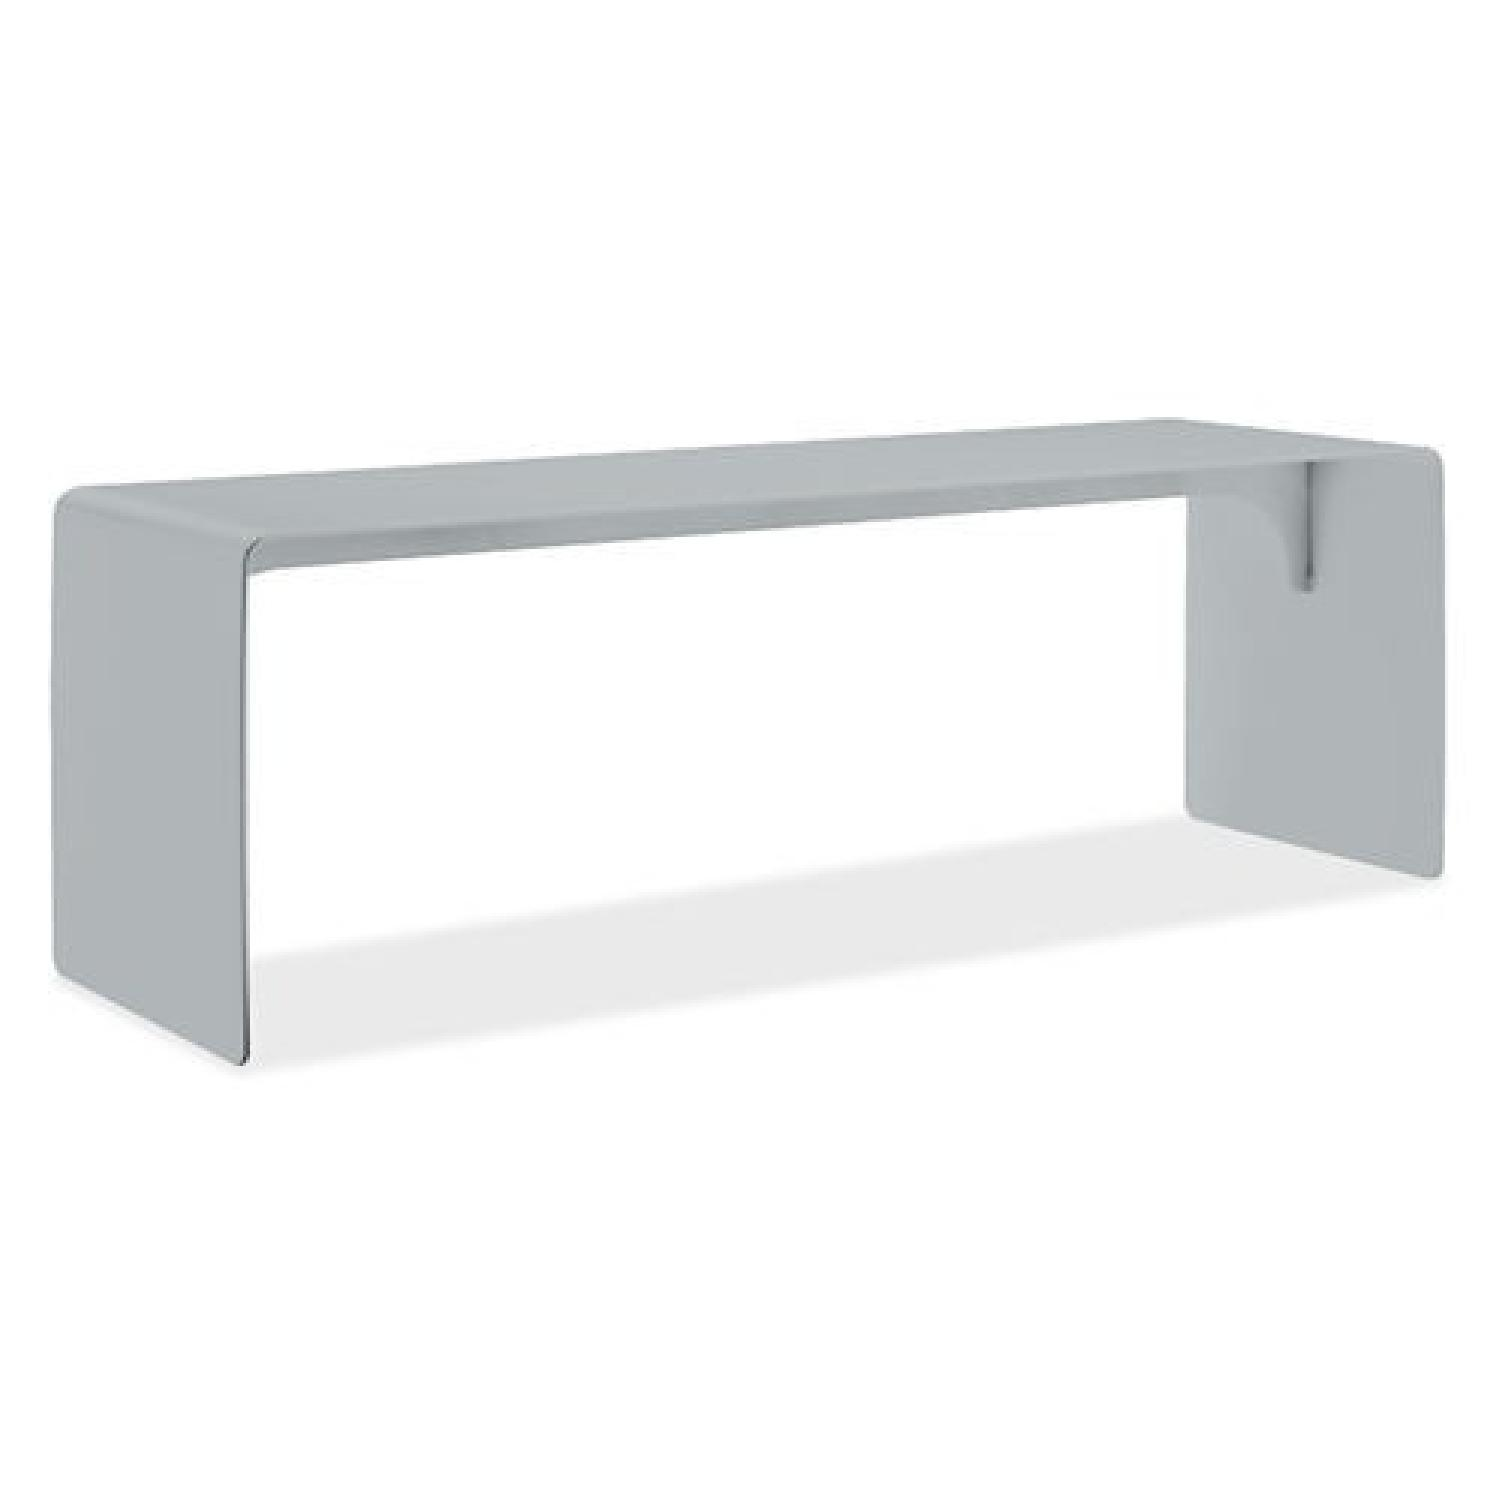 Room & Board Cooper Outdoor Bench in Silver